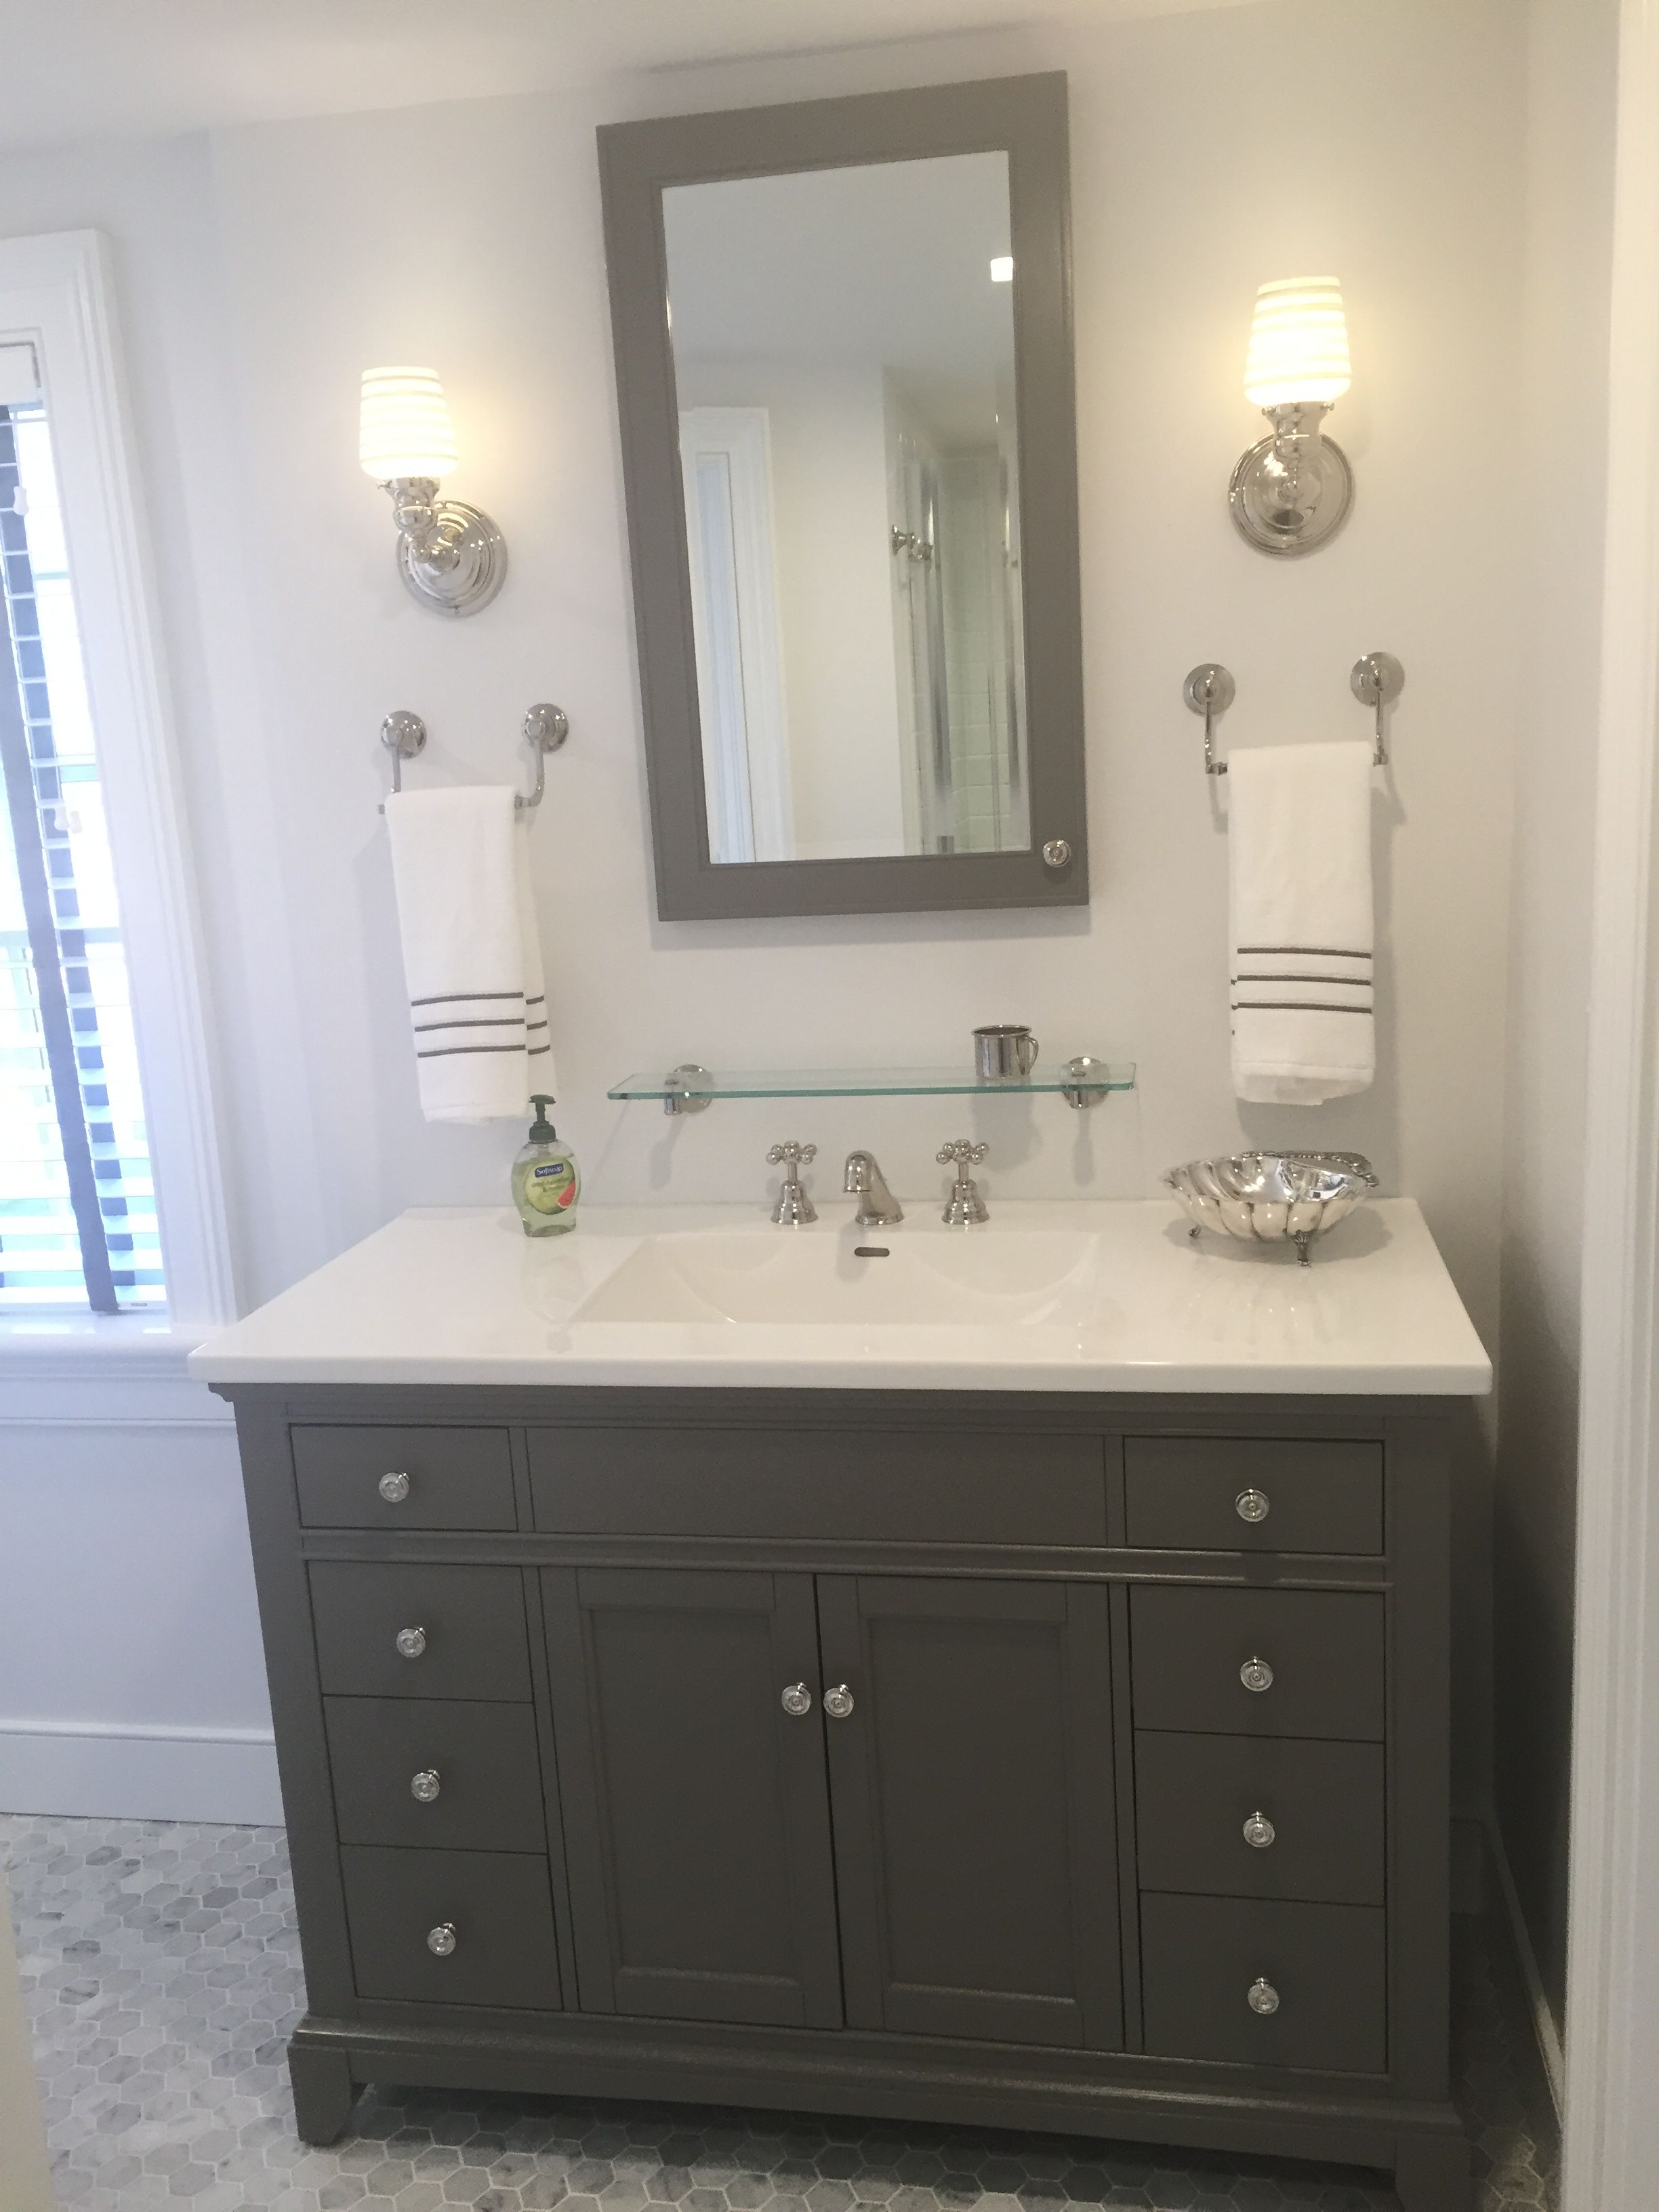 Gray and white bathroom marble carrera hexagon tile floor rohl gray and white bathroom marble carrera hexagon tile floor rohl bath fixtures in polished dailygadgetfo Image collections